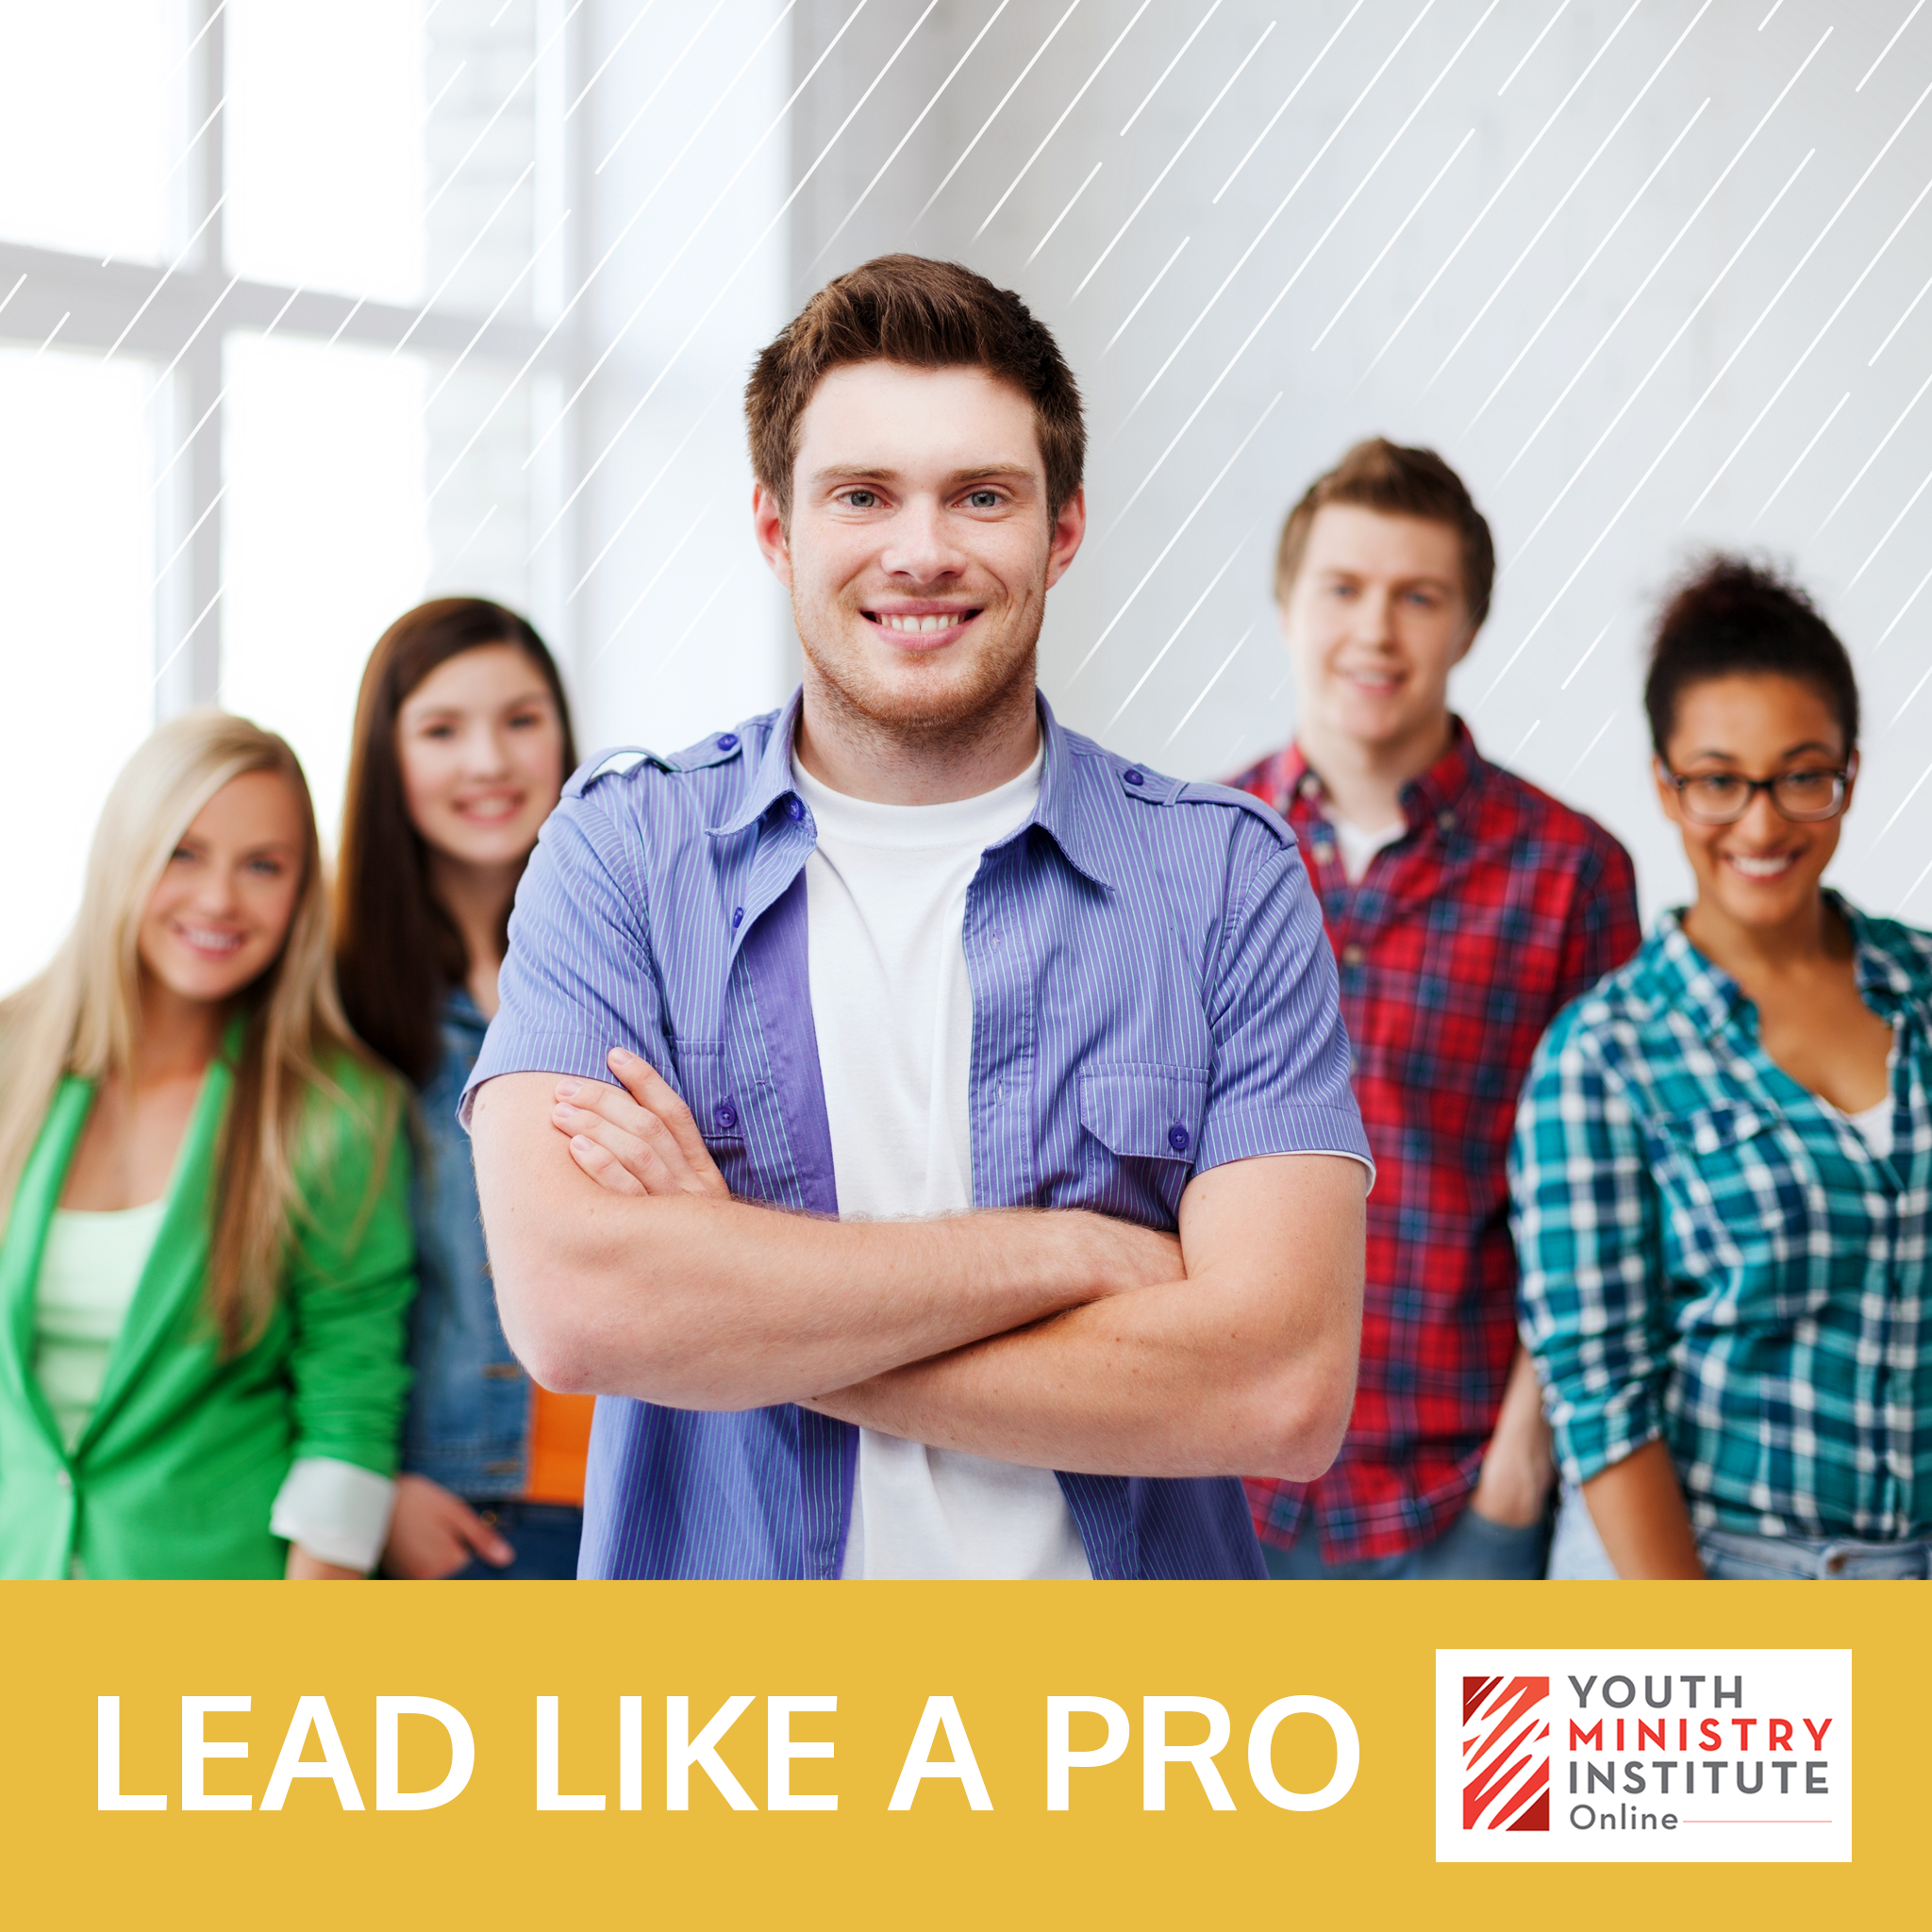 Youth Ministry Online course on how to develop as a leader.